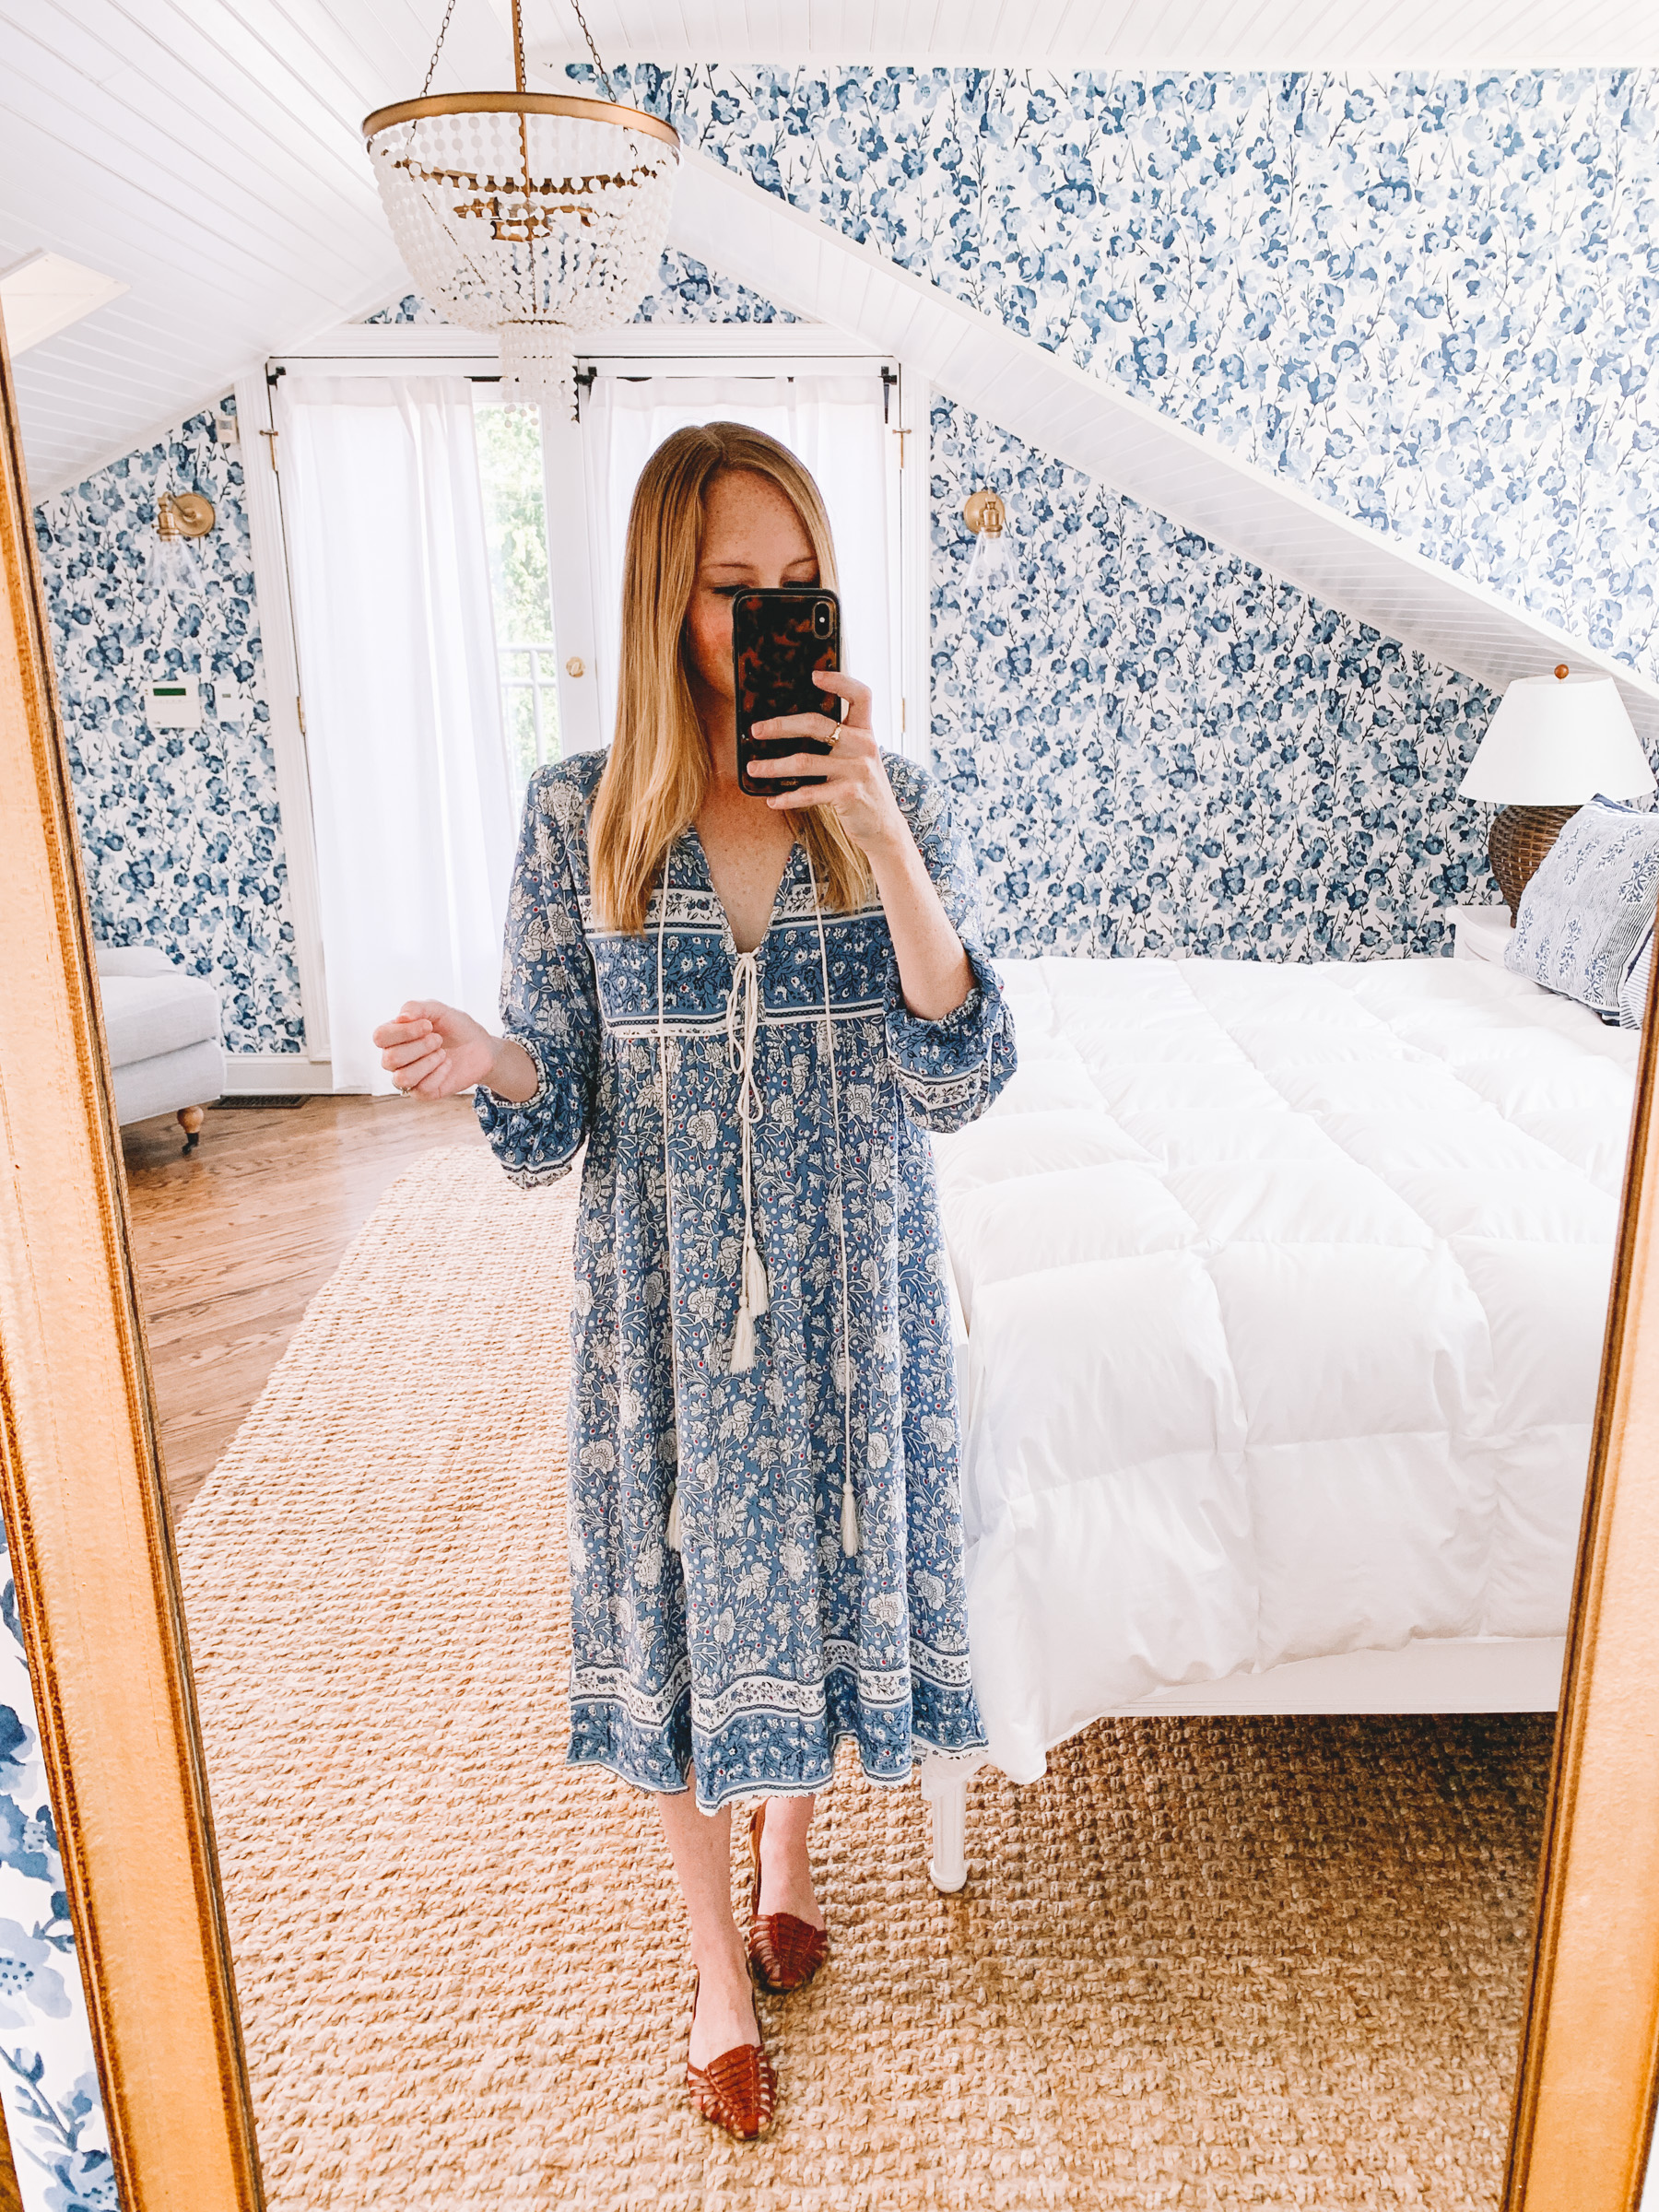 $28 Amazon Mumu Review